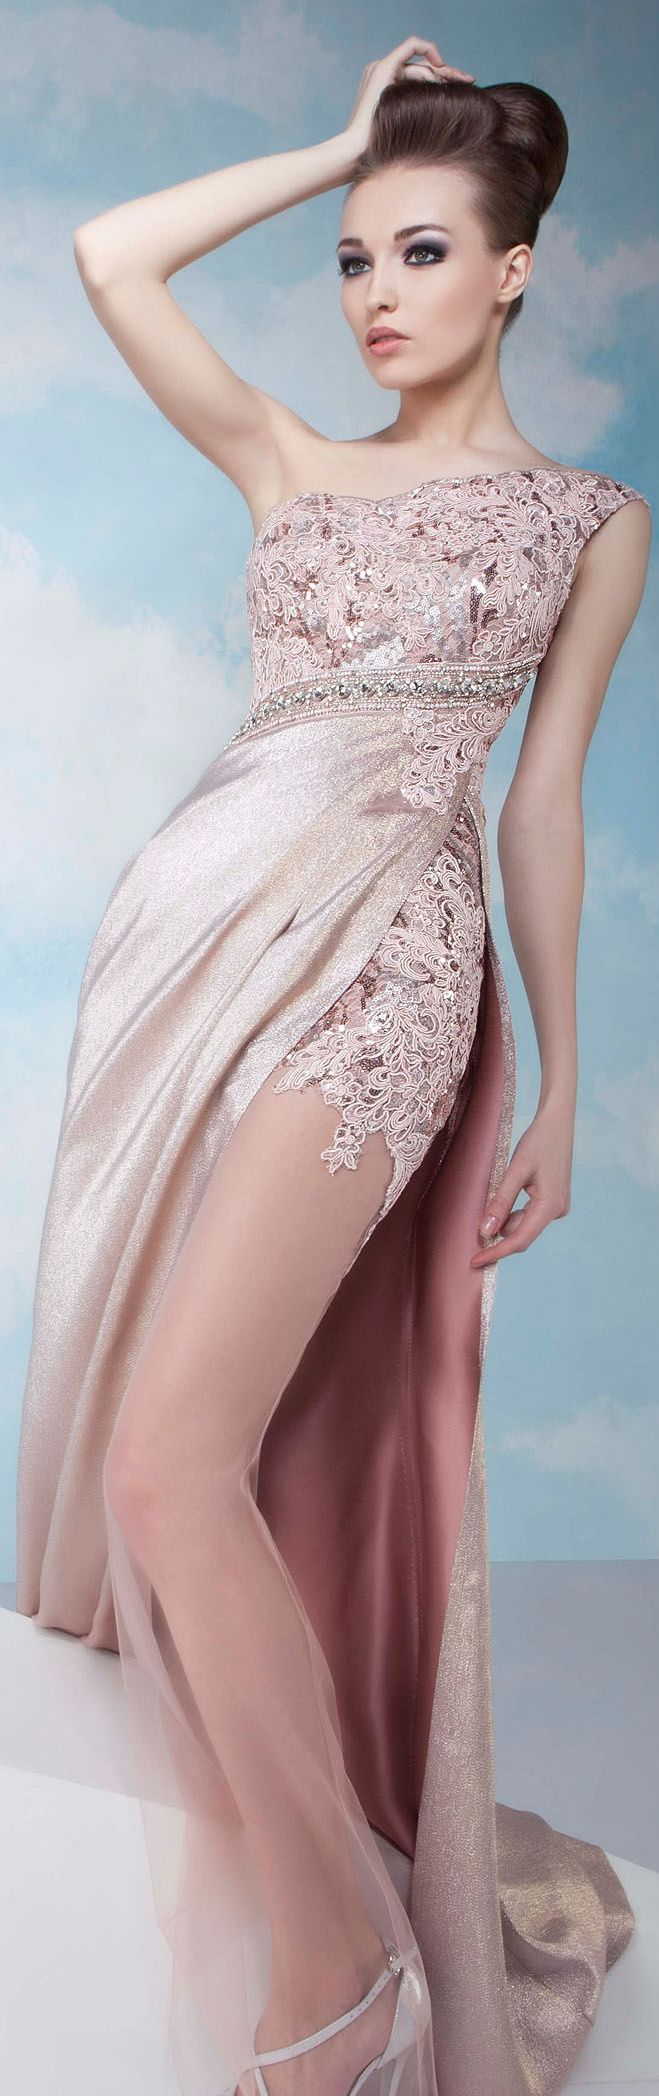 Tony Chaaya Couture S/S 2014